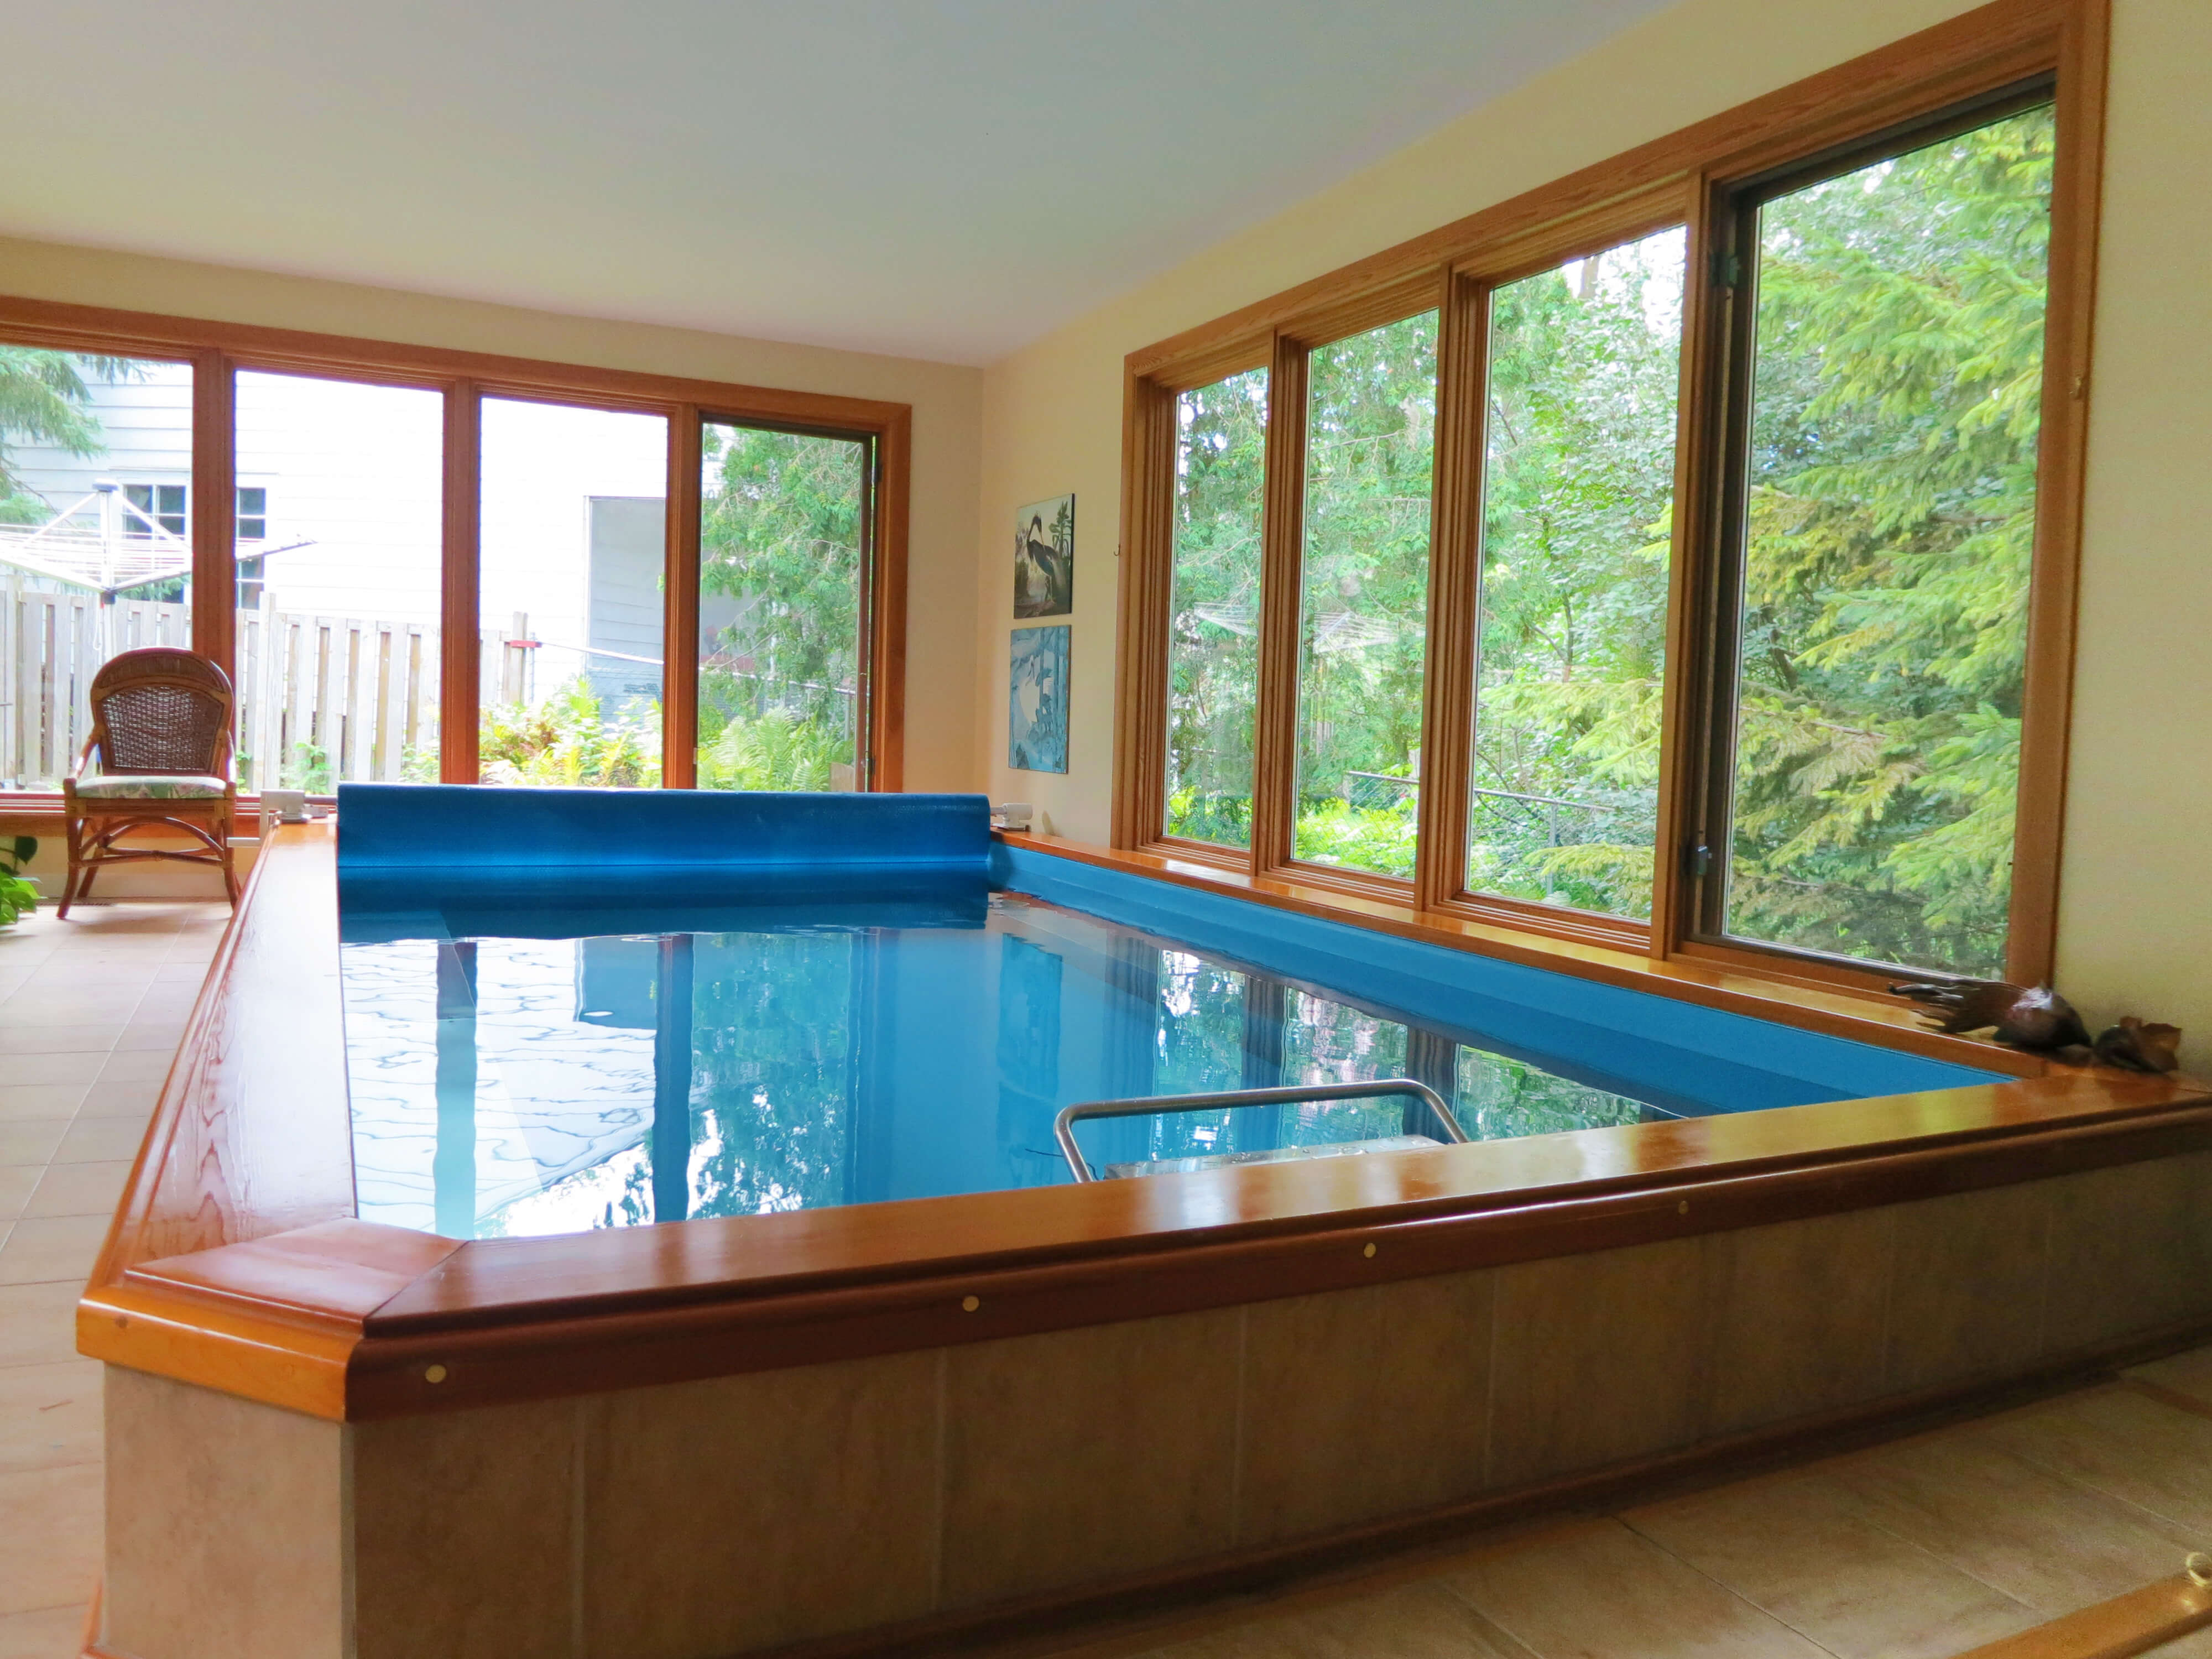 The indoor Original Endless Pool that replaced the traditional outdoor pool in this Ottawa home